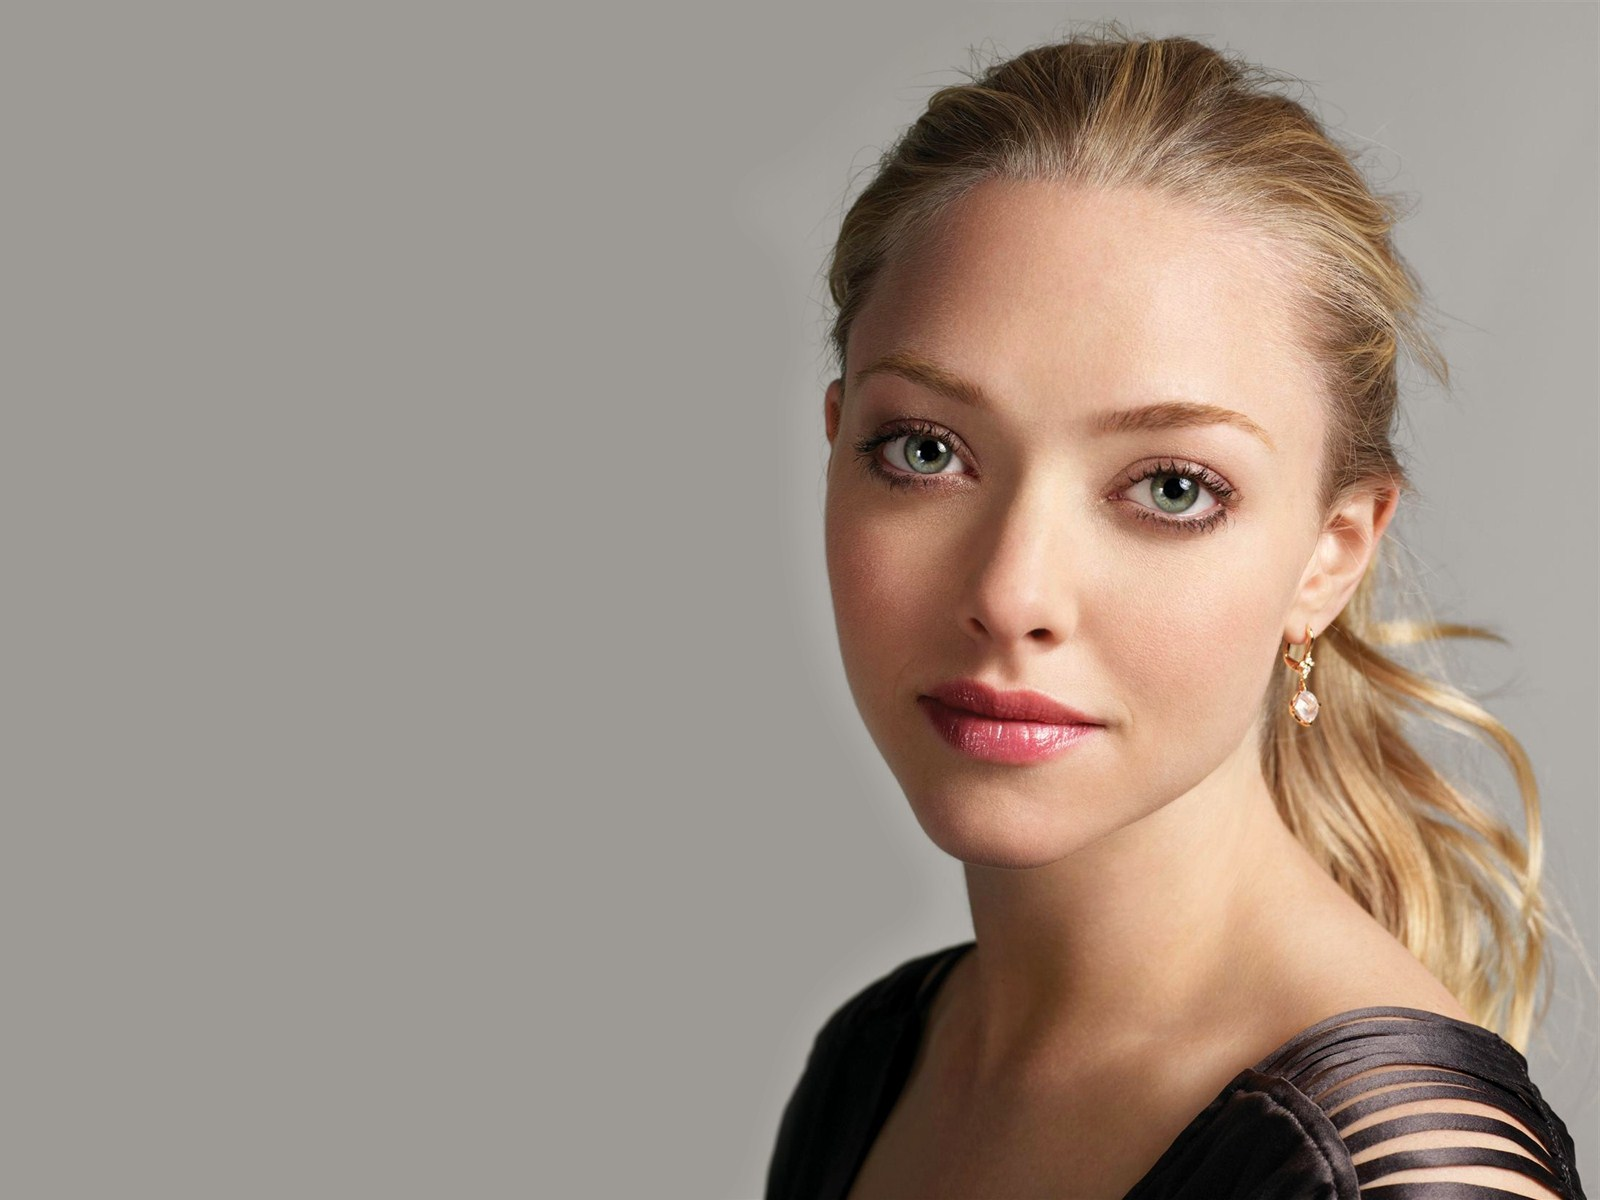 ... Amanda Seyfried Desktop Wallpapers ...